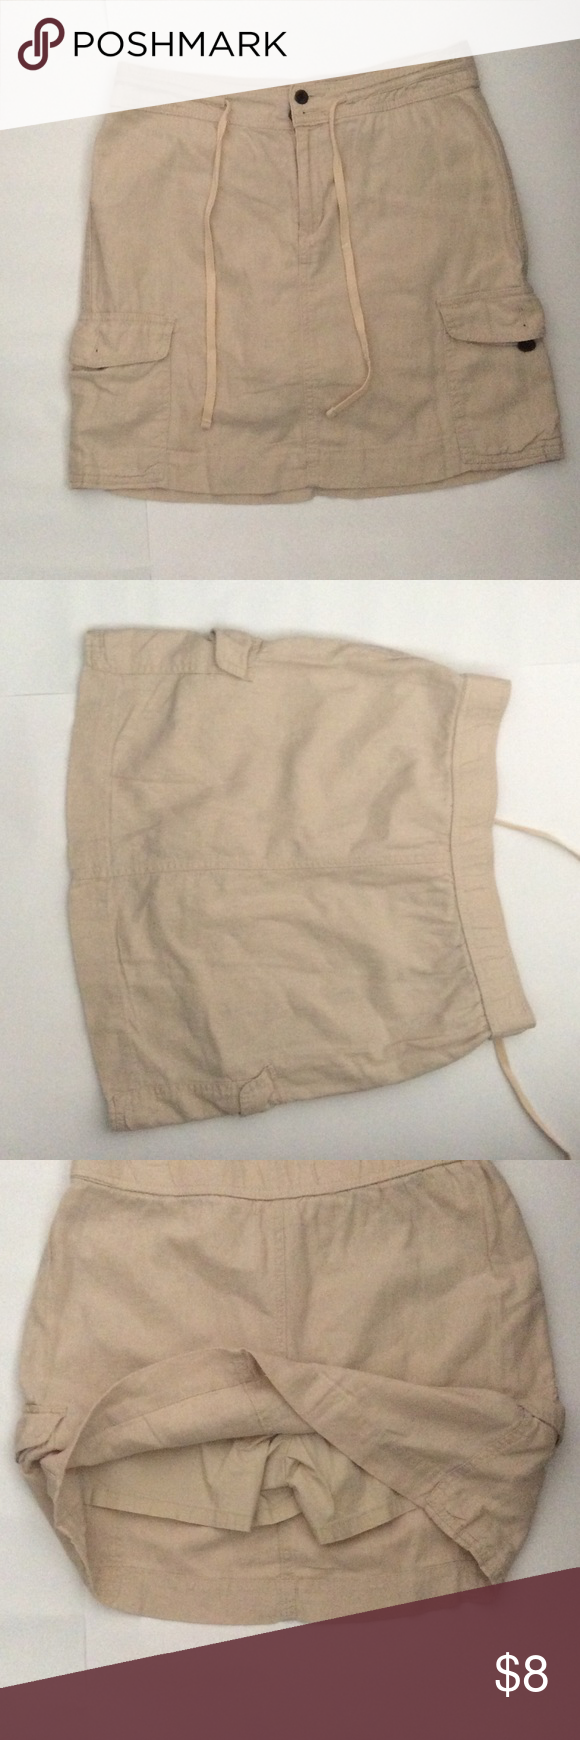 Skirt Outer Skirt: 55% Linen, 45% Rayon. Inner Short: 98% Cotton, 2% Spandex Croft & Barrow Shorts Skorts